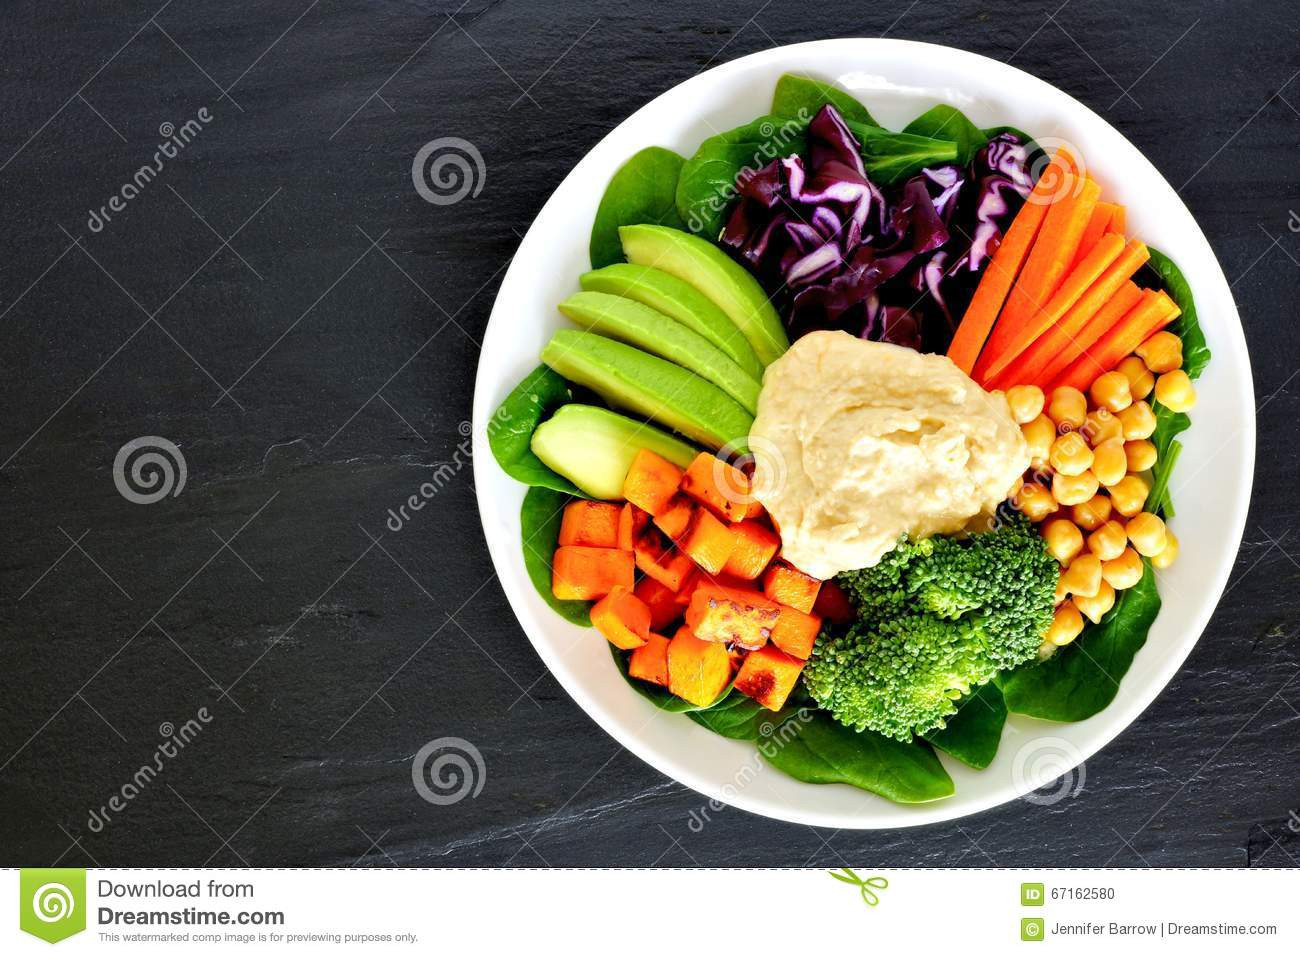 Super Healthy Lunches  Healthy Lunch Bowl With Super foods And Mixed Ve ables